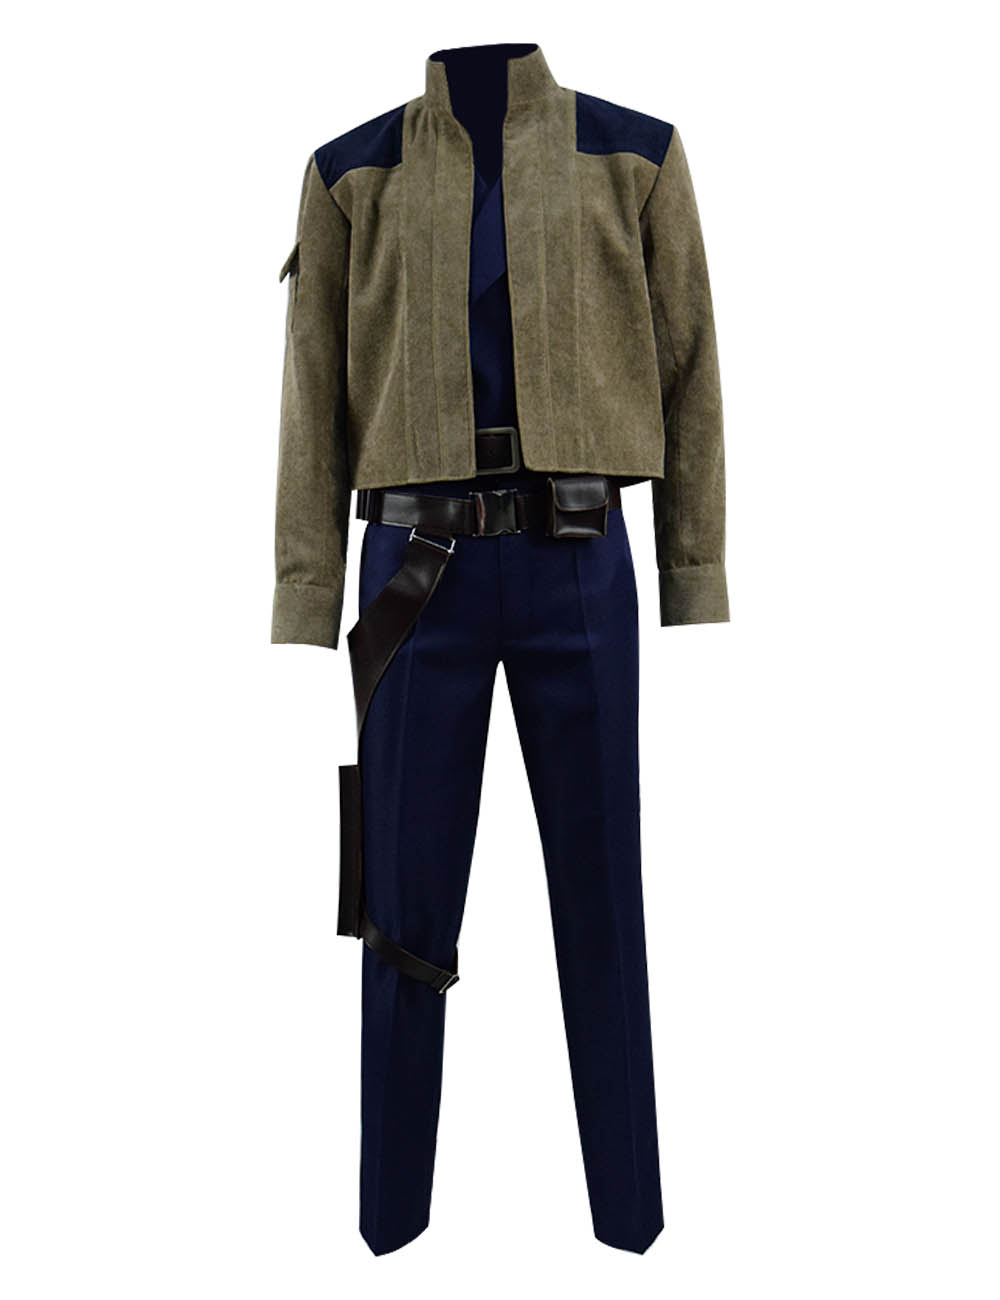 Solo A Star Wars Story Han Solo Jacket Cosplay Costume Gun Holster Men's Cosplay Full Set